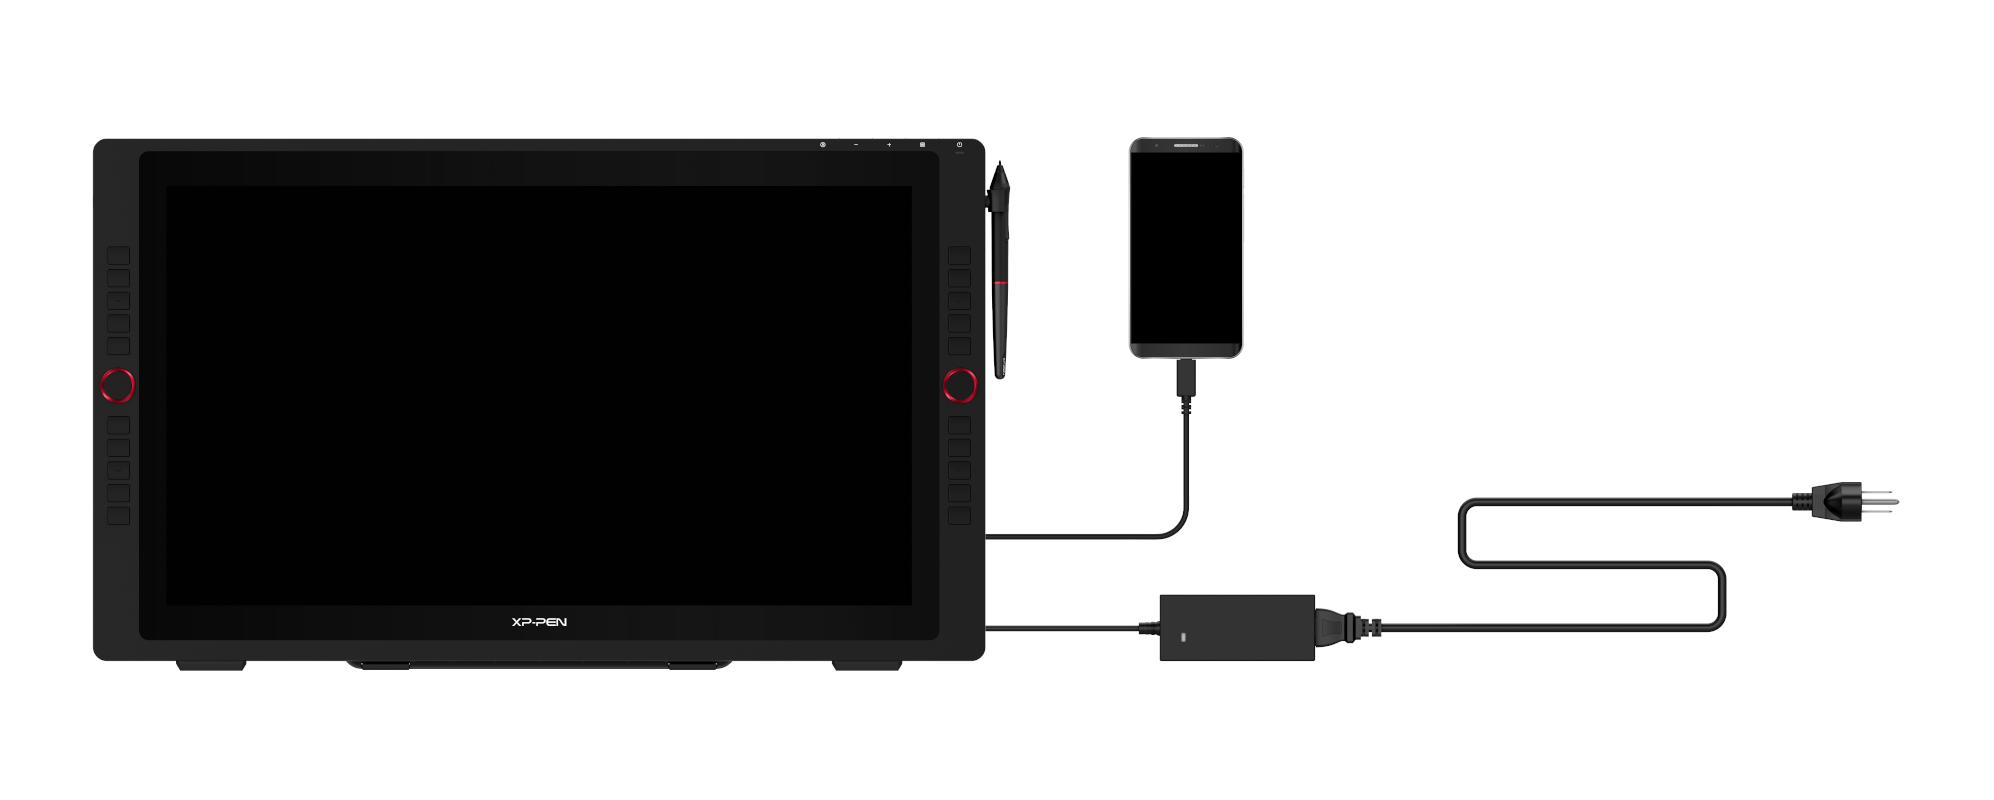 Artist-24-Pro connected to smartphone via USB-C cable